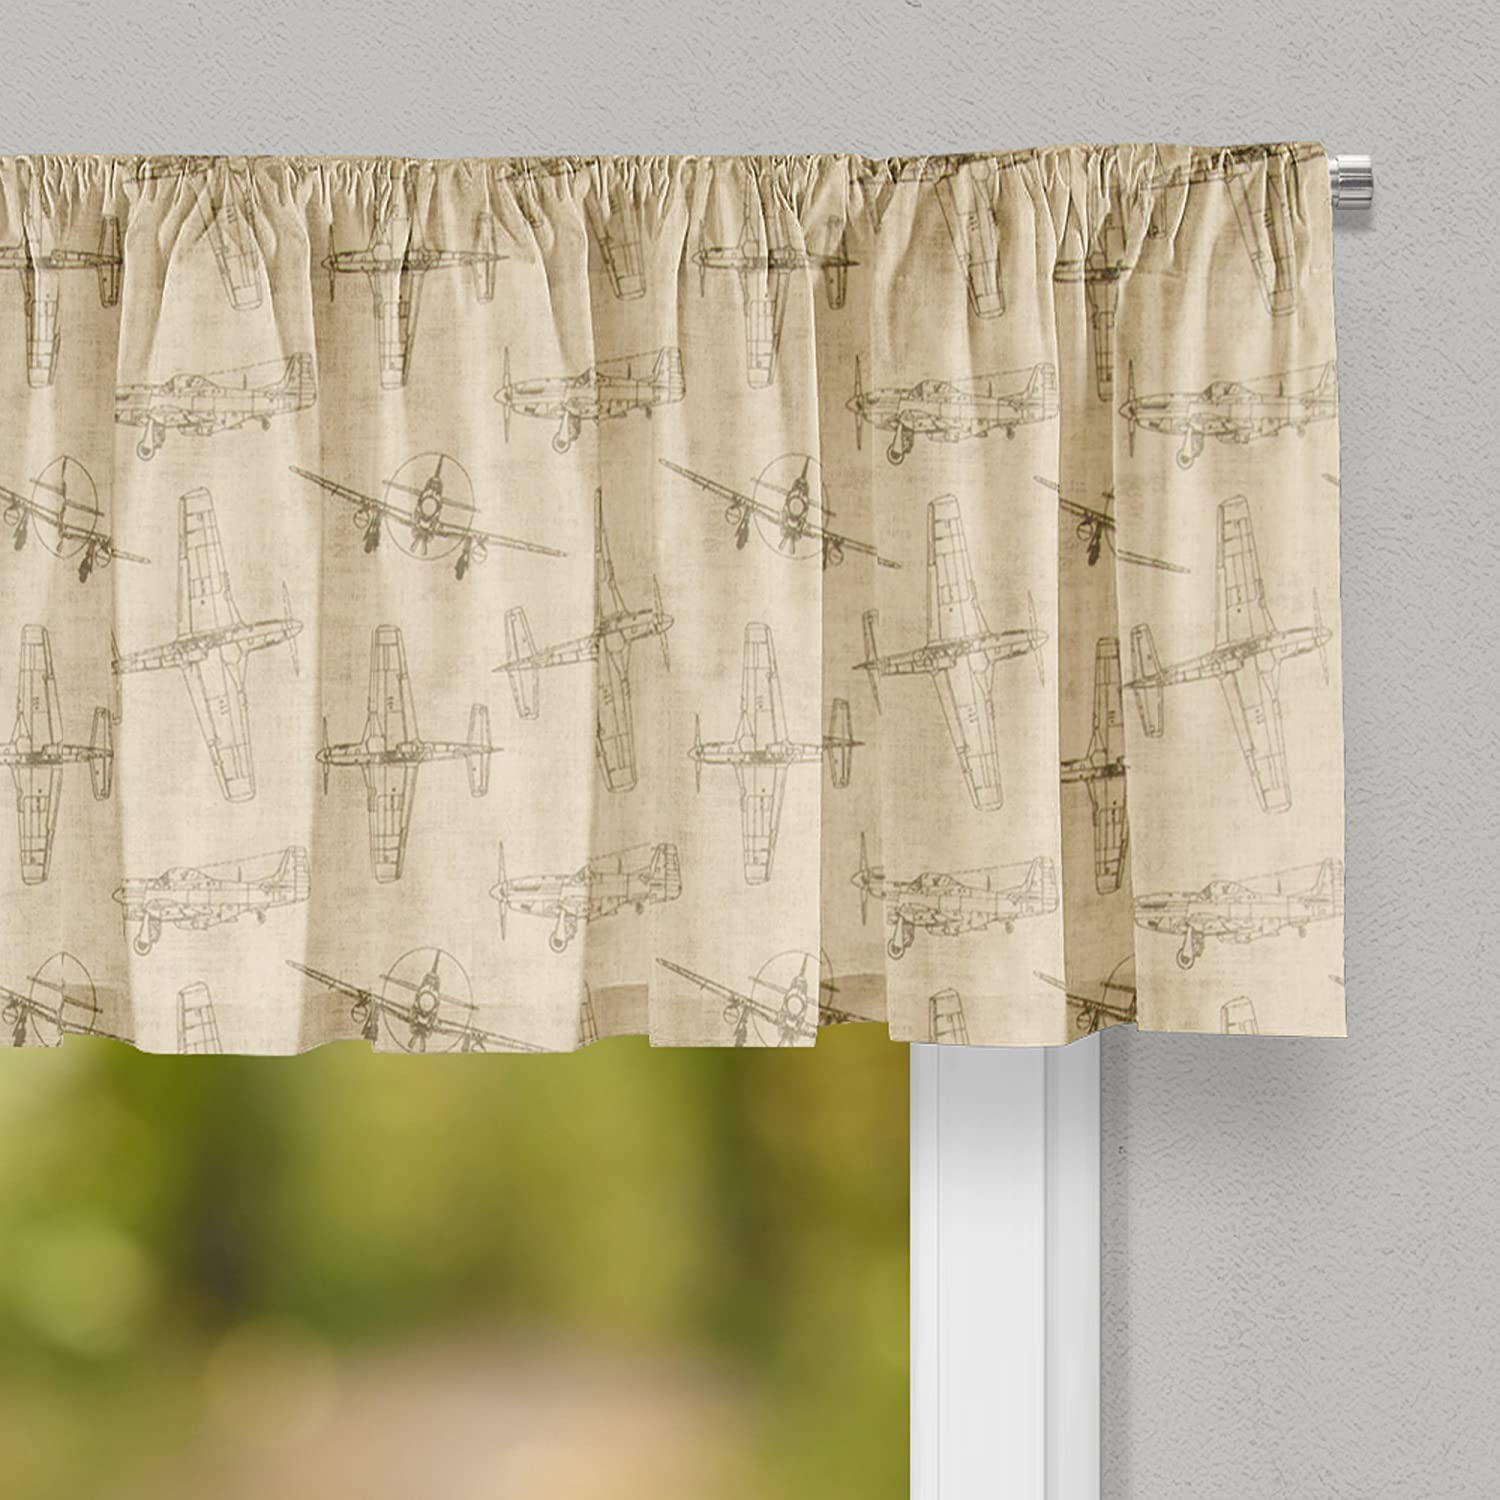 Glenna Jean Airplanes Curtain Valance 70W x18H for Kids Window